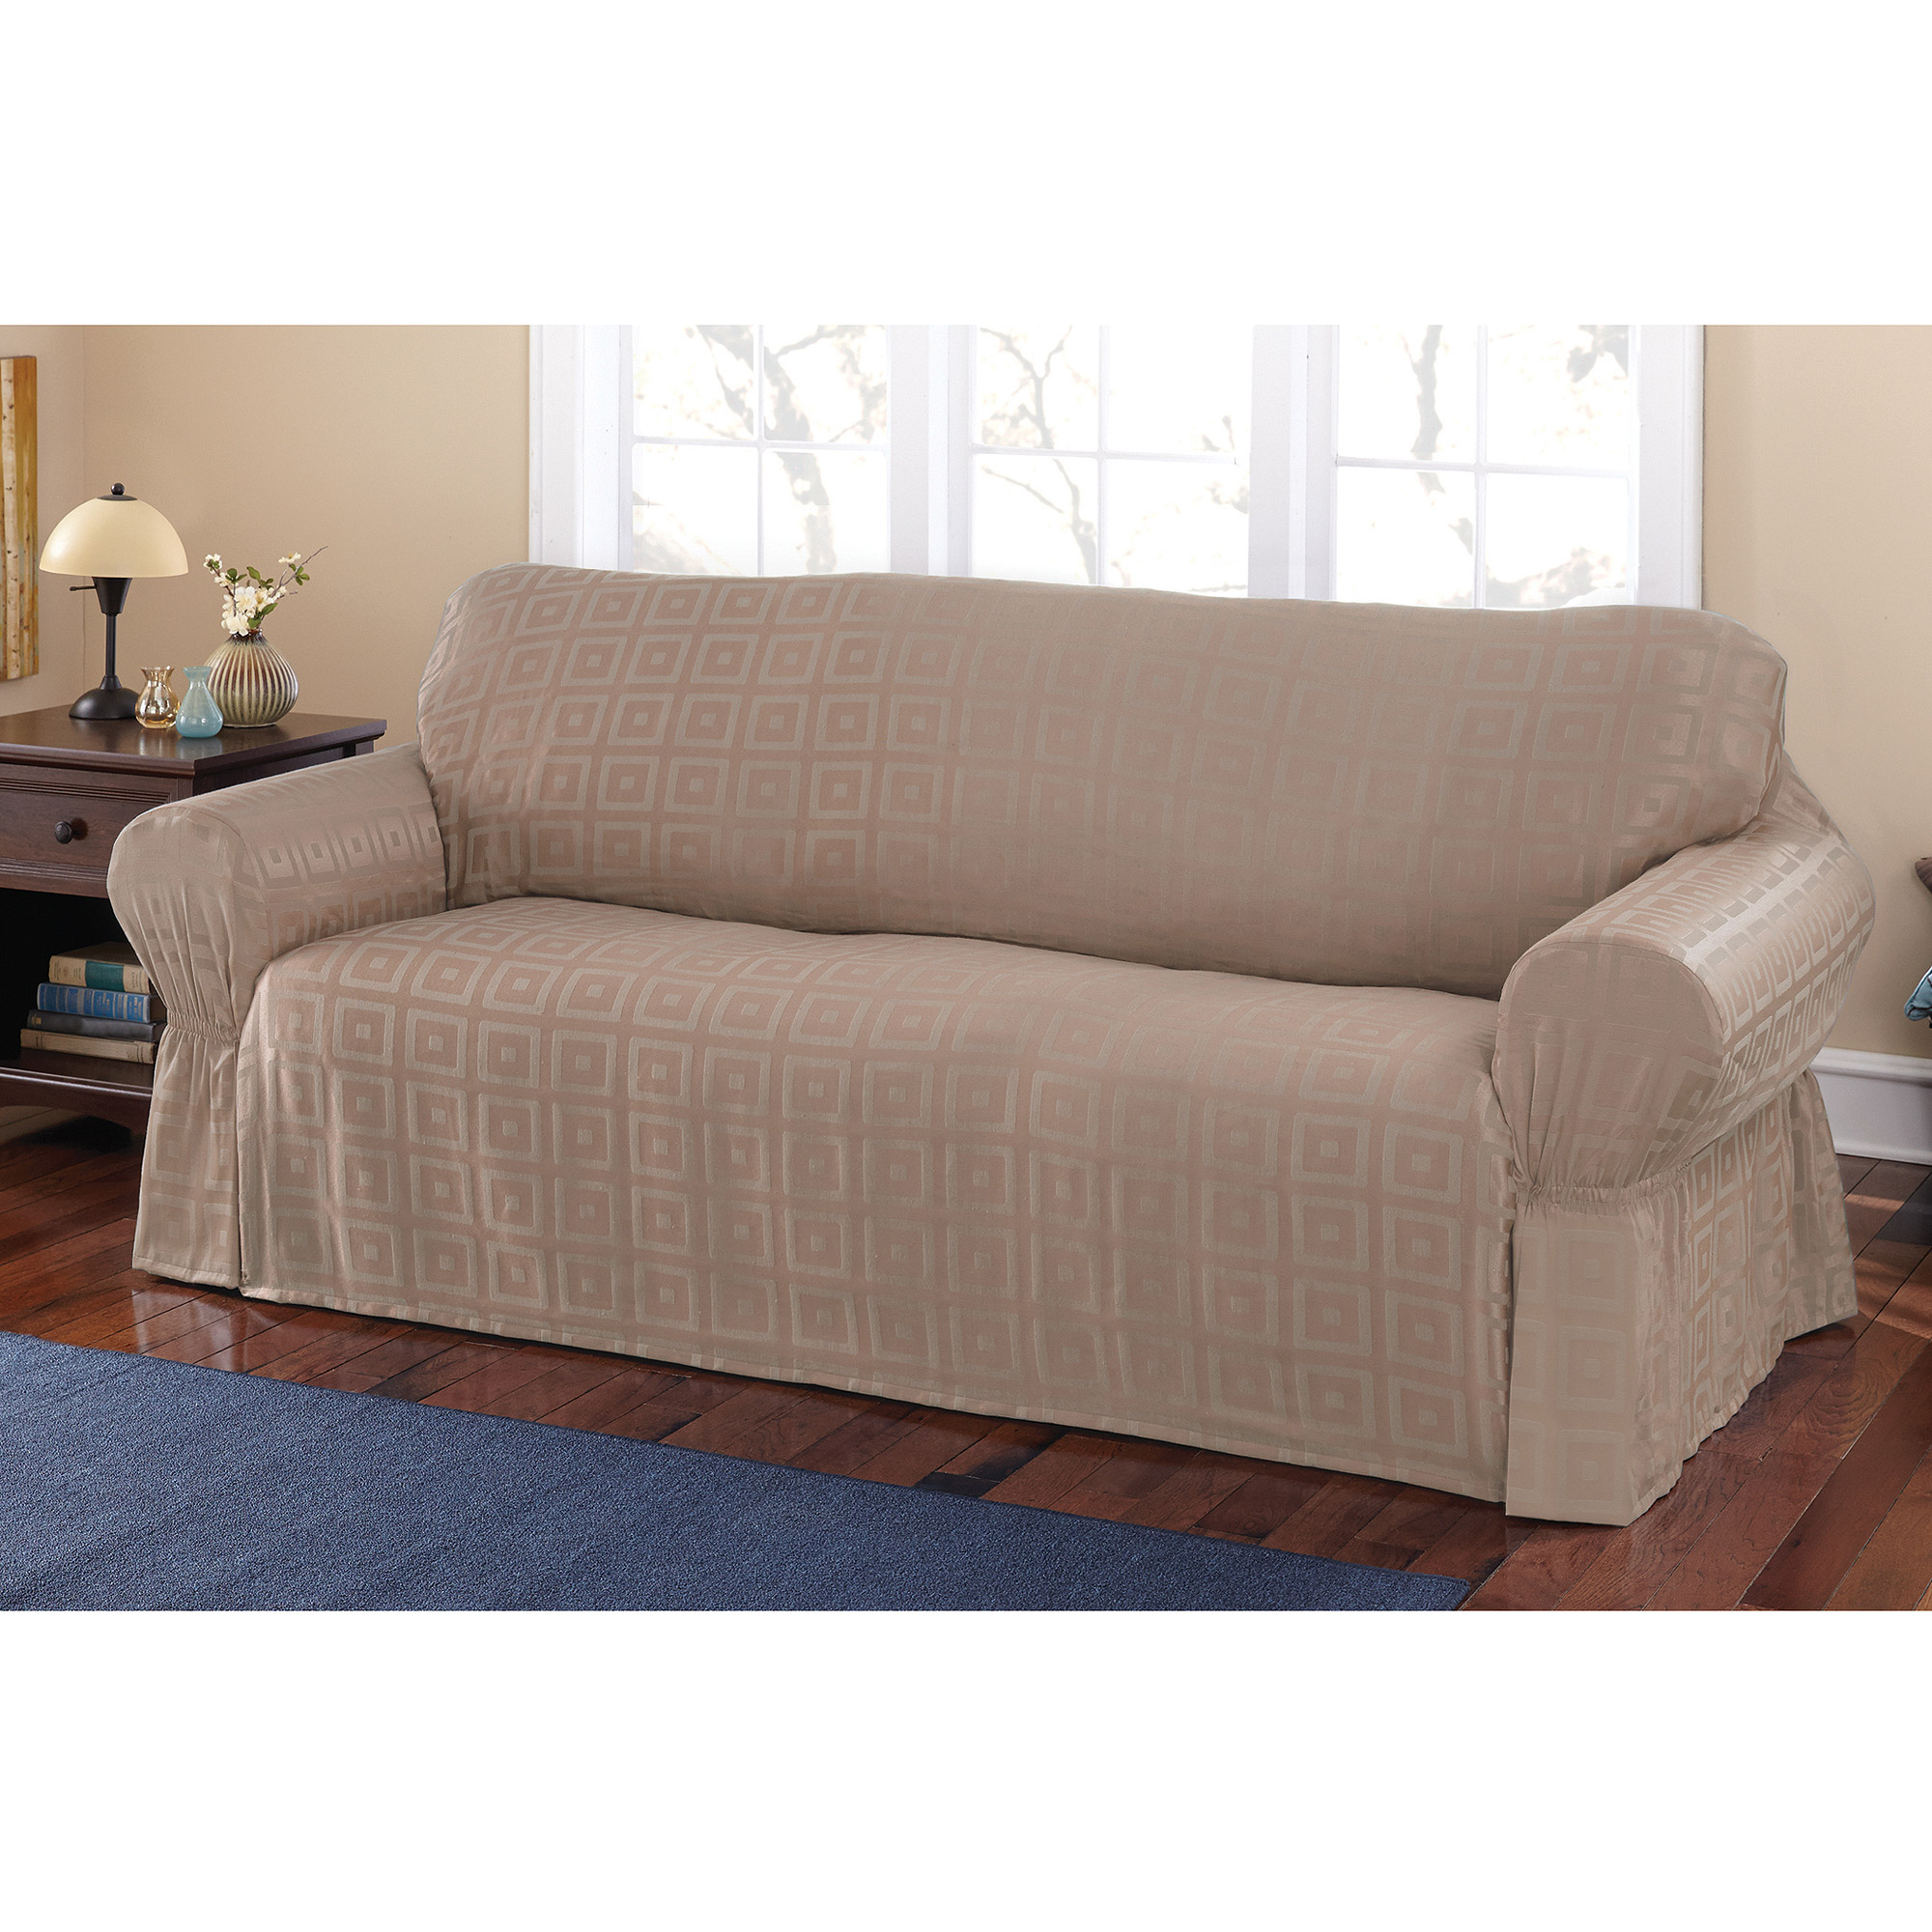 Sofa And Chair Slipcovers Intended For Trendy Mainstays Sherwood Slipcover Sofa – Walmart (View 13 of 20)